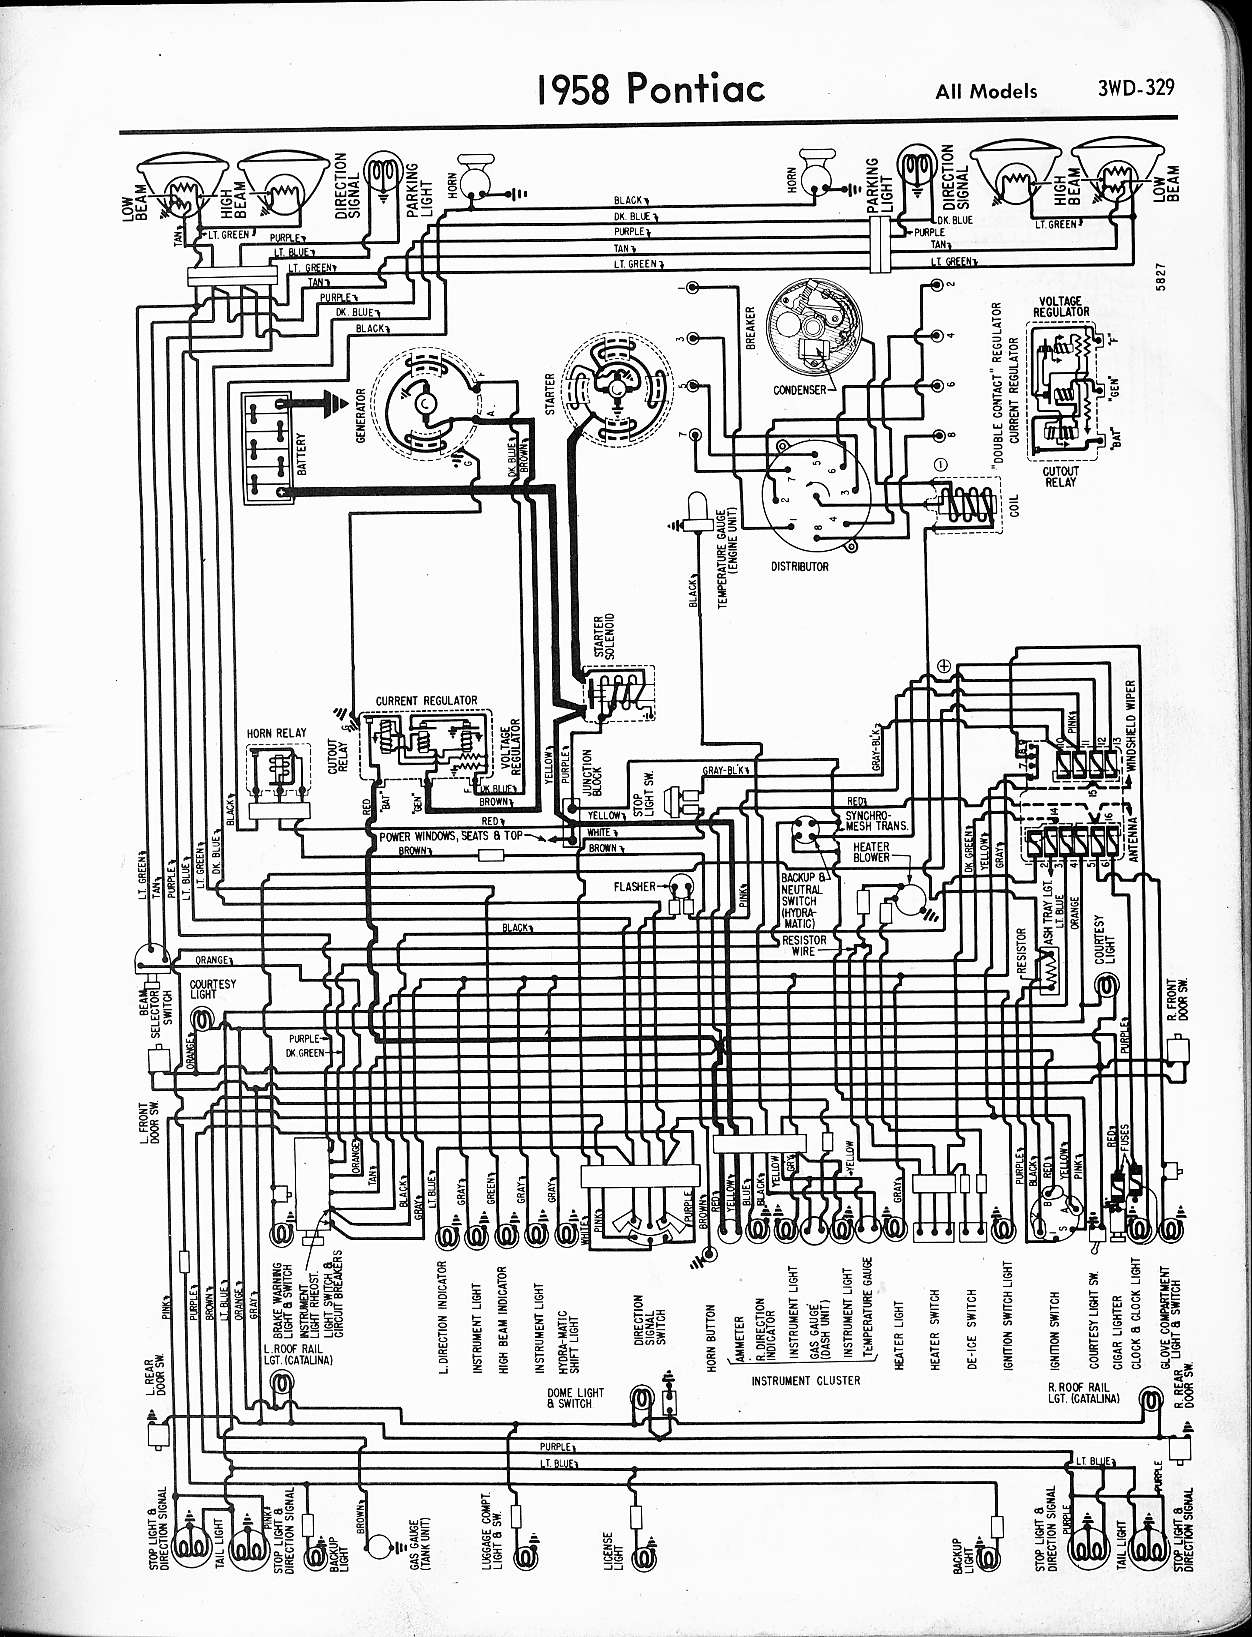 Pontiac Ventura Wiring Not Lossing Diagram 1971 Novabackup Light Diagrams Wallace Racing Rh Wallaceracing Com 1972